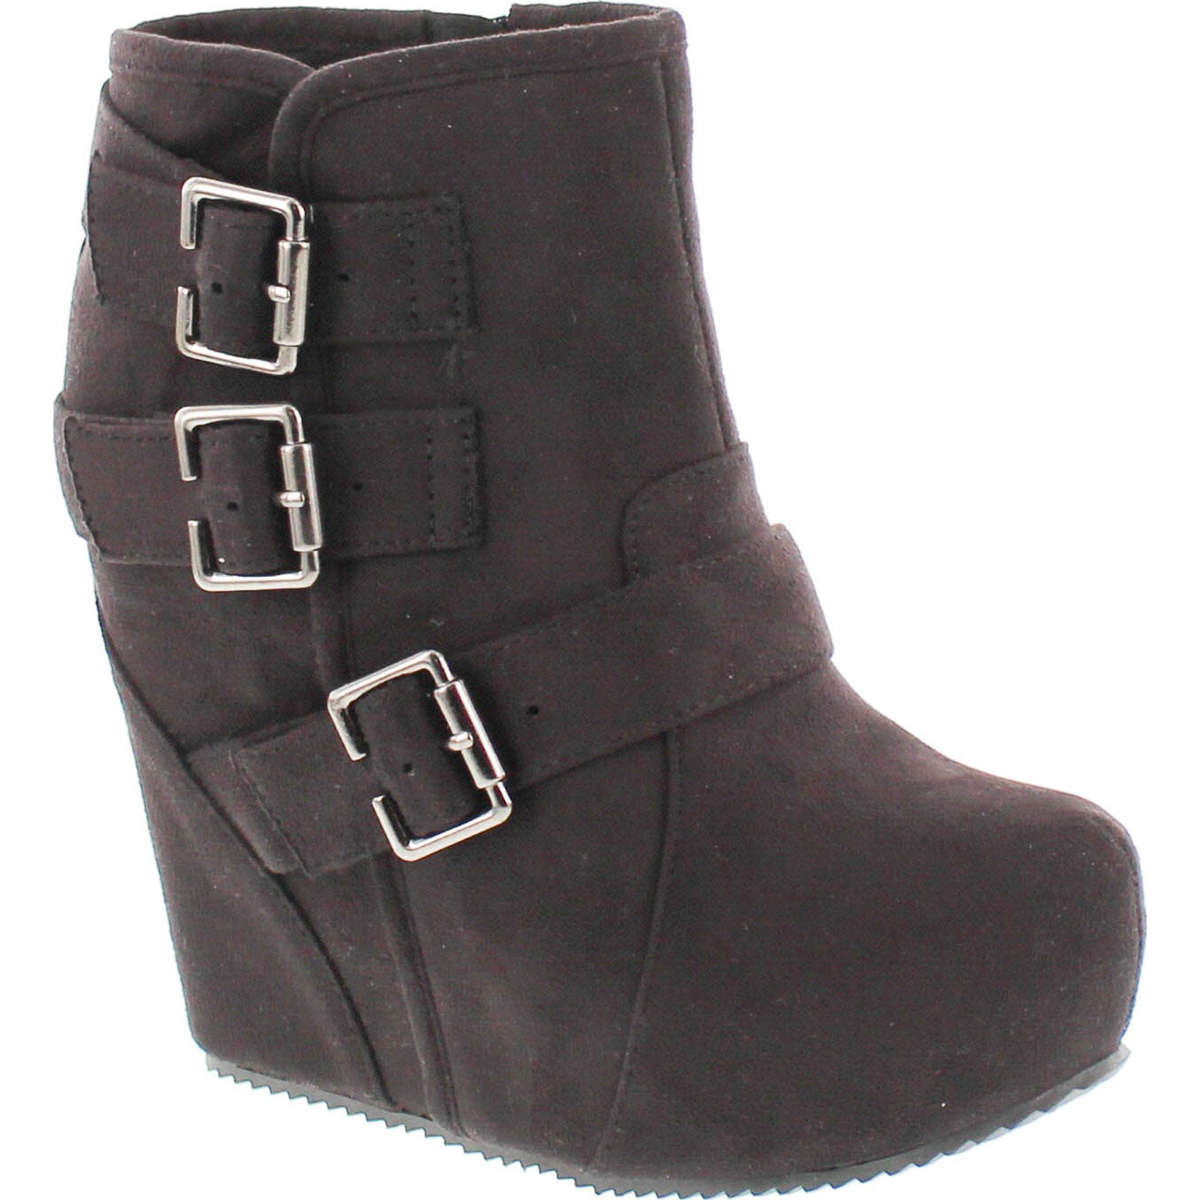 Soda Women's Besso Faux Suede Triple Buckle Platform Wedge Ankle Bootie Boot